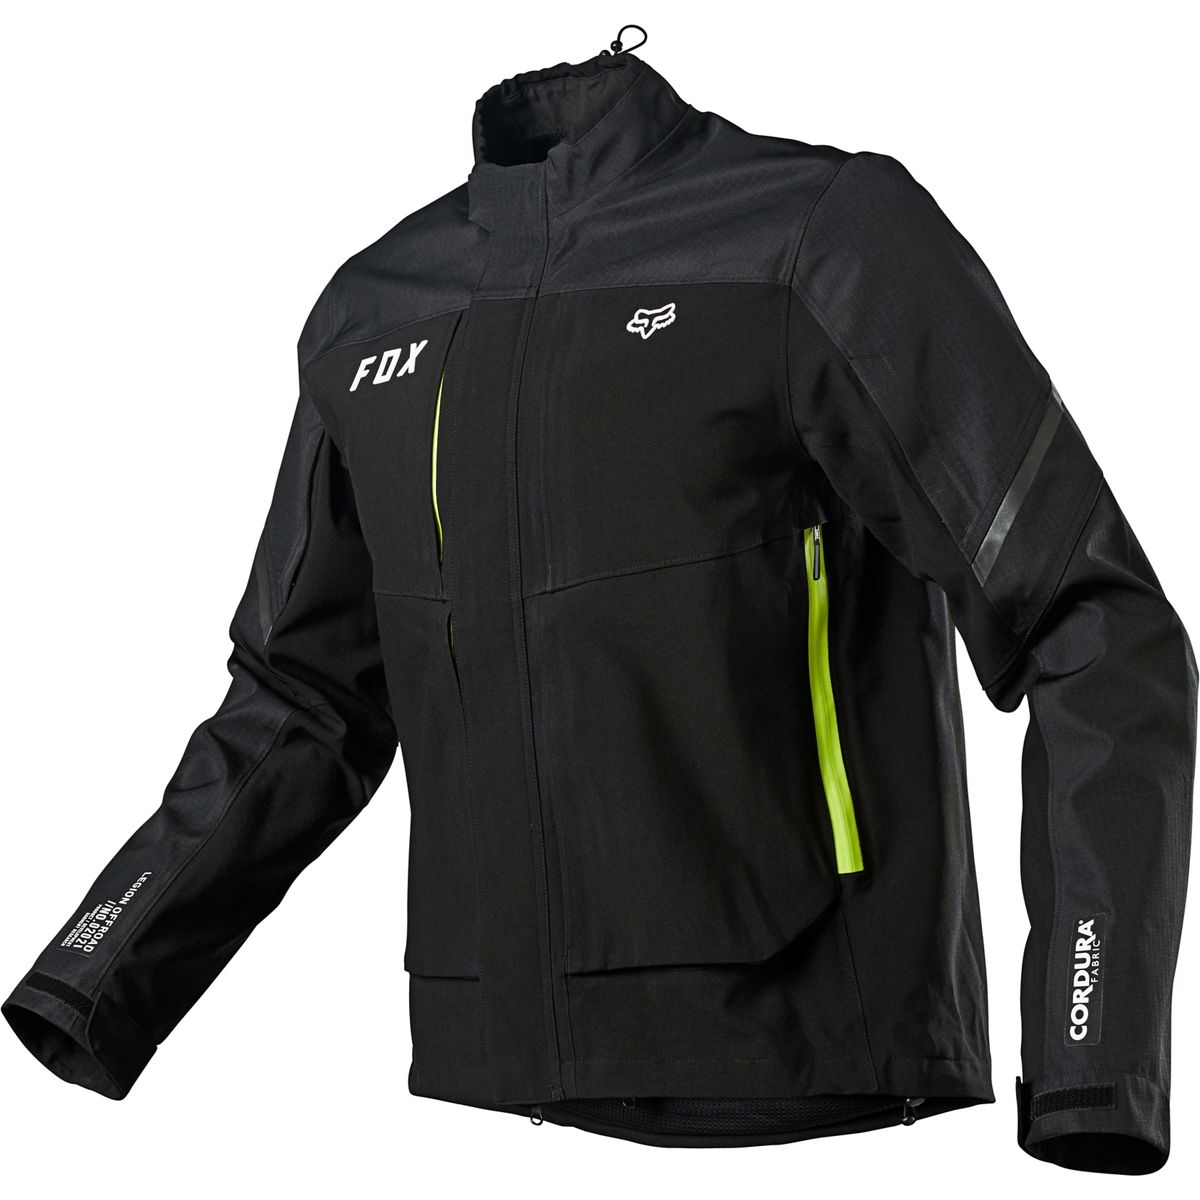 25788-001 2021 Fox Racing Legion Downpour Enduro Jacket Black Veste Enduro Jas Vest Fahrerjacke